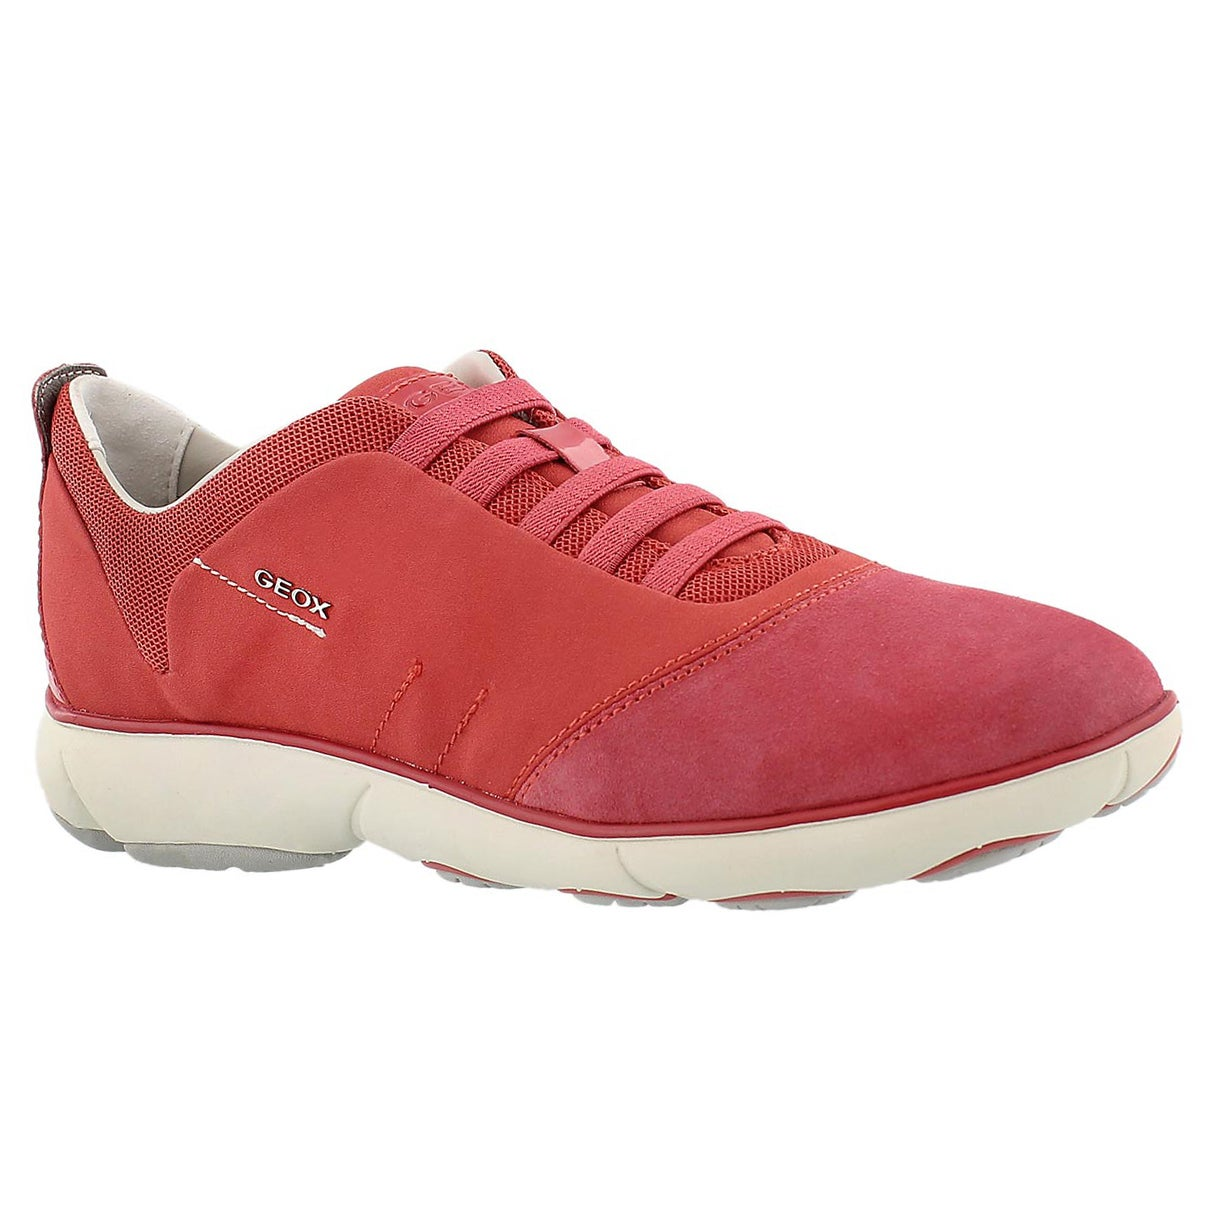 Women's NEBULA coral running shoes